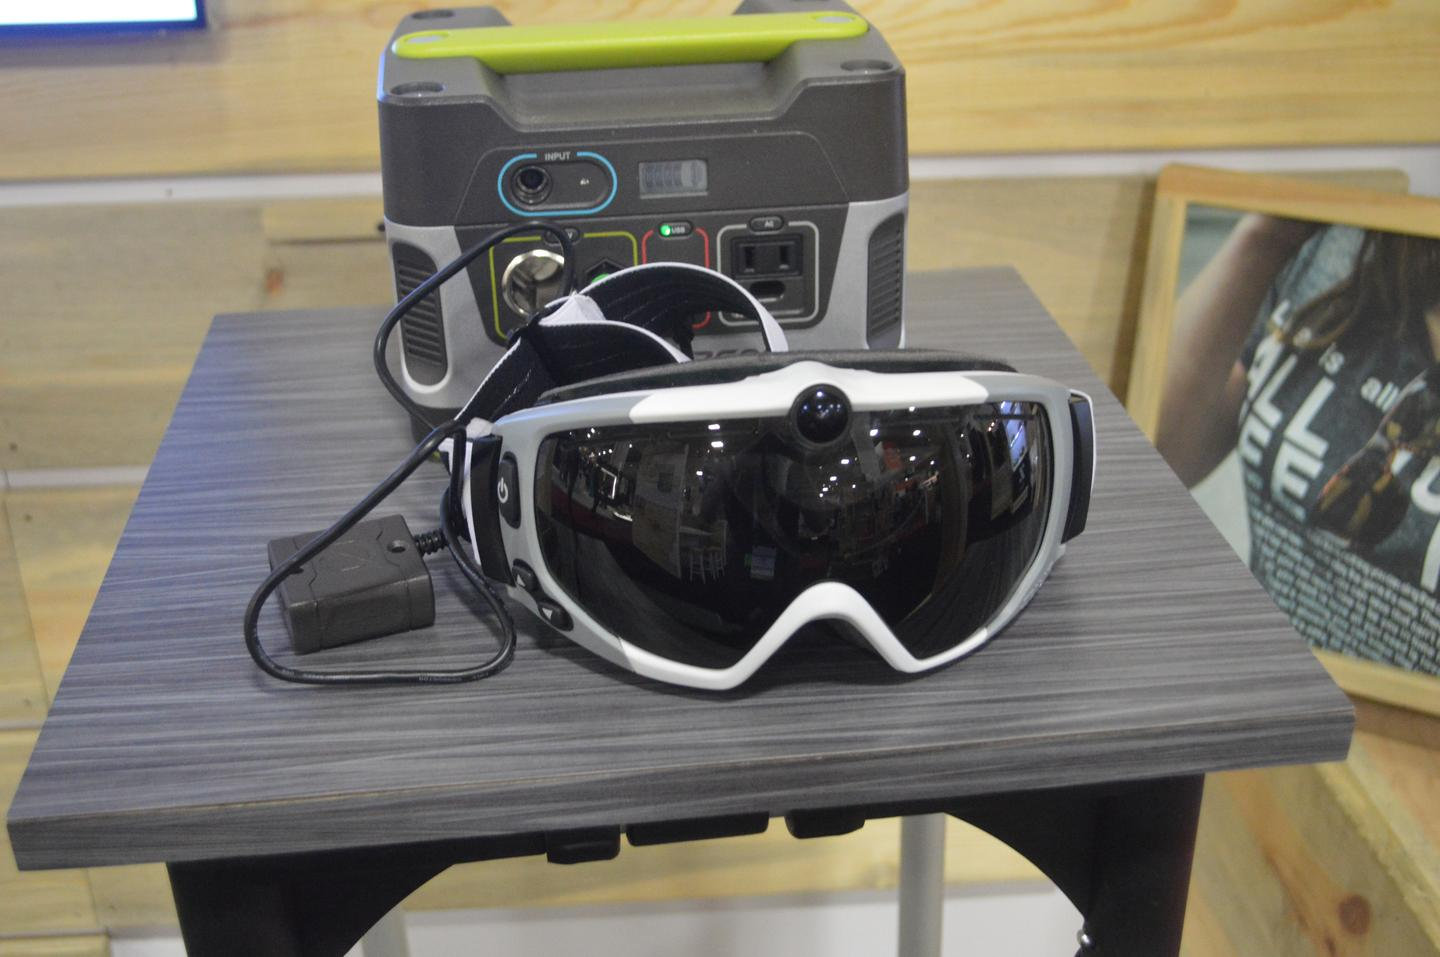 The Zeal HD2 goggles hooked up to a Goal Zero portable power unit